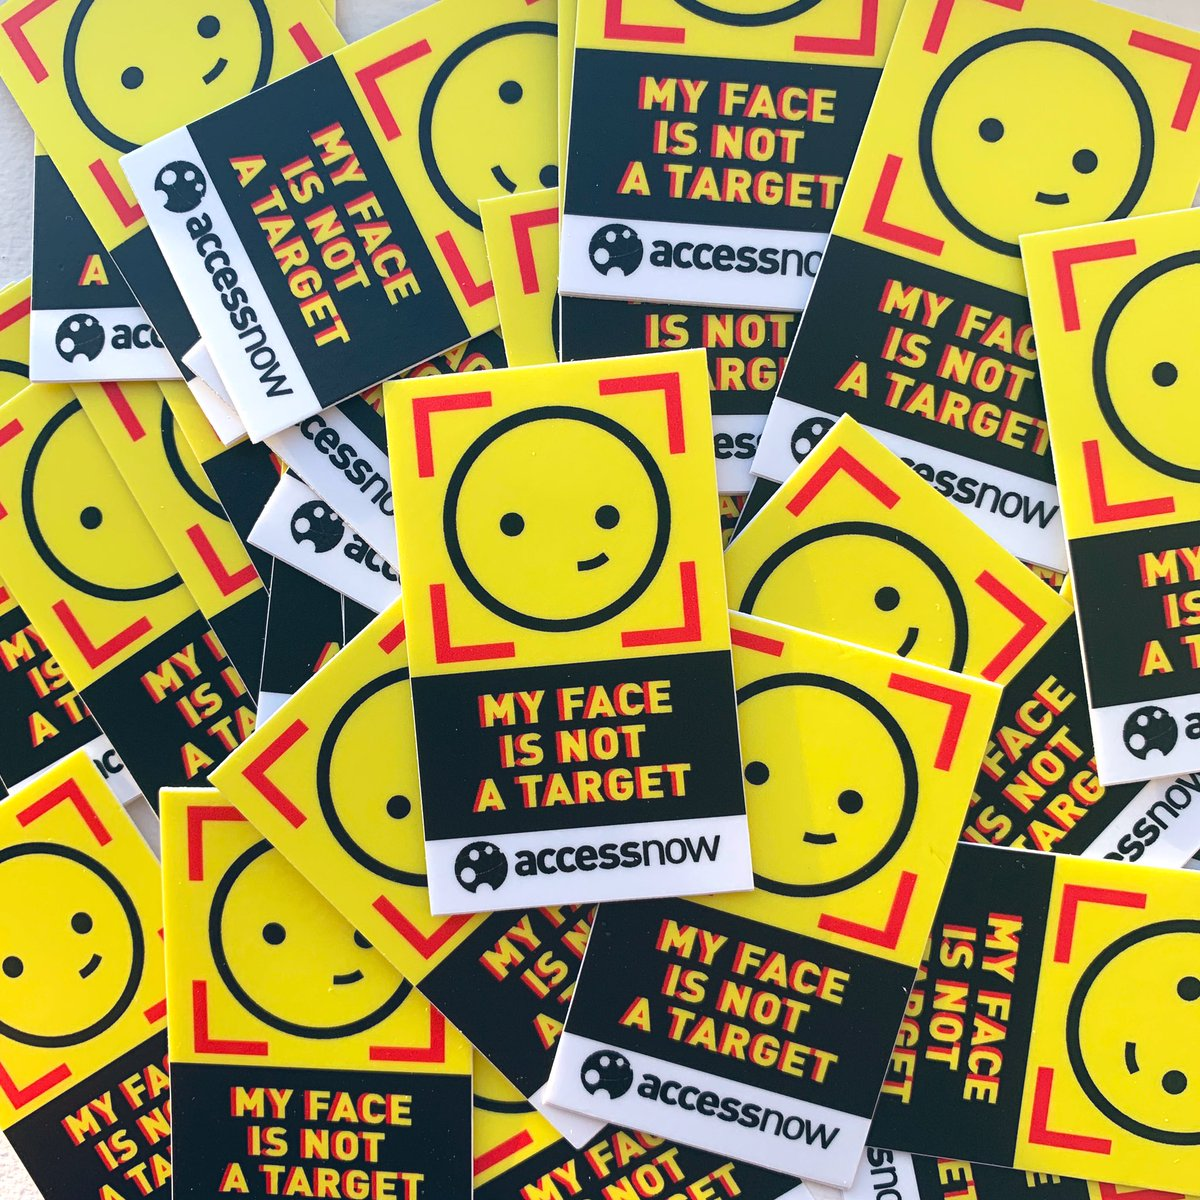 #RightsCon reminder. Facial recognition and (digital identity in general) are very dangerous tech. Passwords can be changed but faces and fingerprints CAN'T. We need to talk about this.Also, don't take pics of others' faces without consent. Also, I designed this sticker 🙃